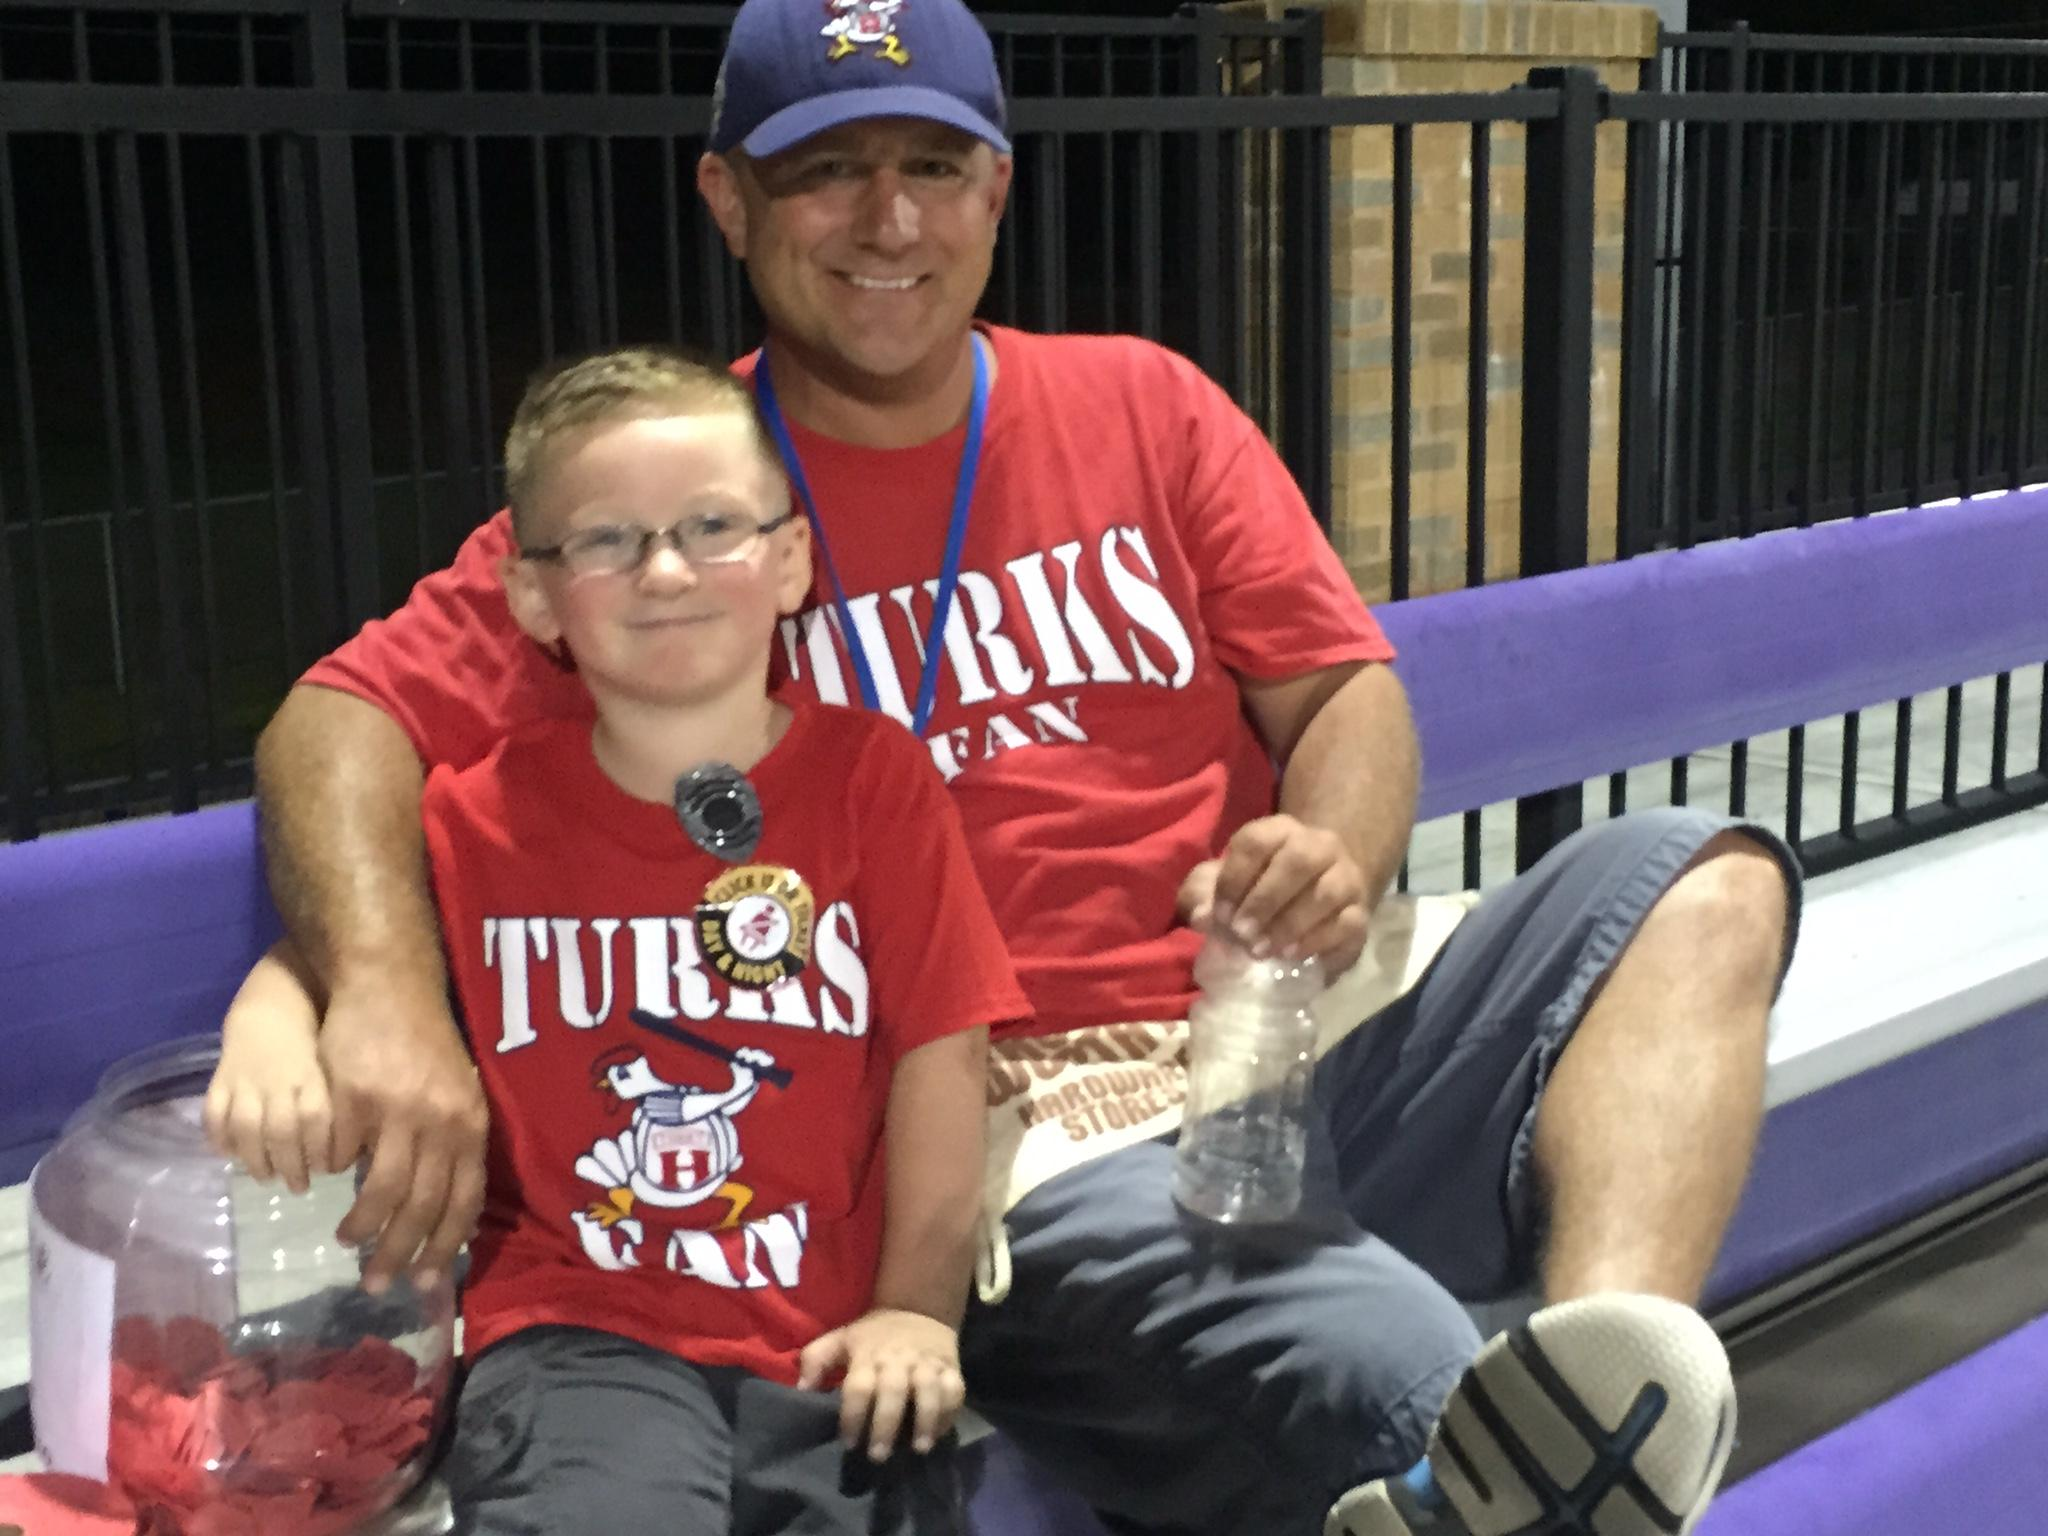 Father and Son Turk Fans